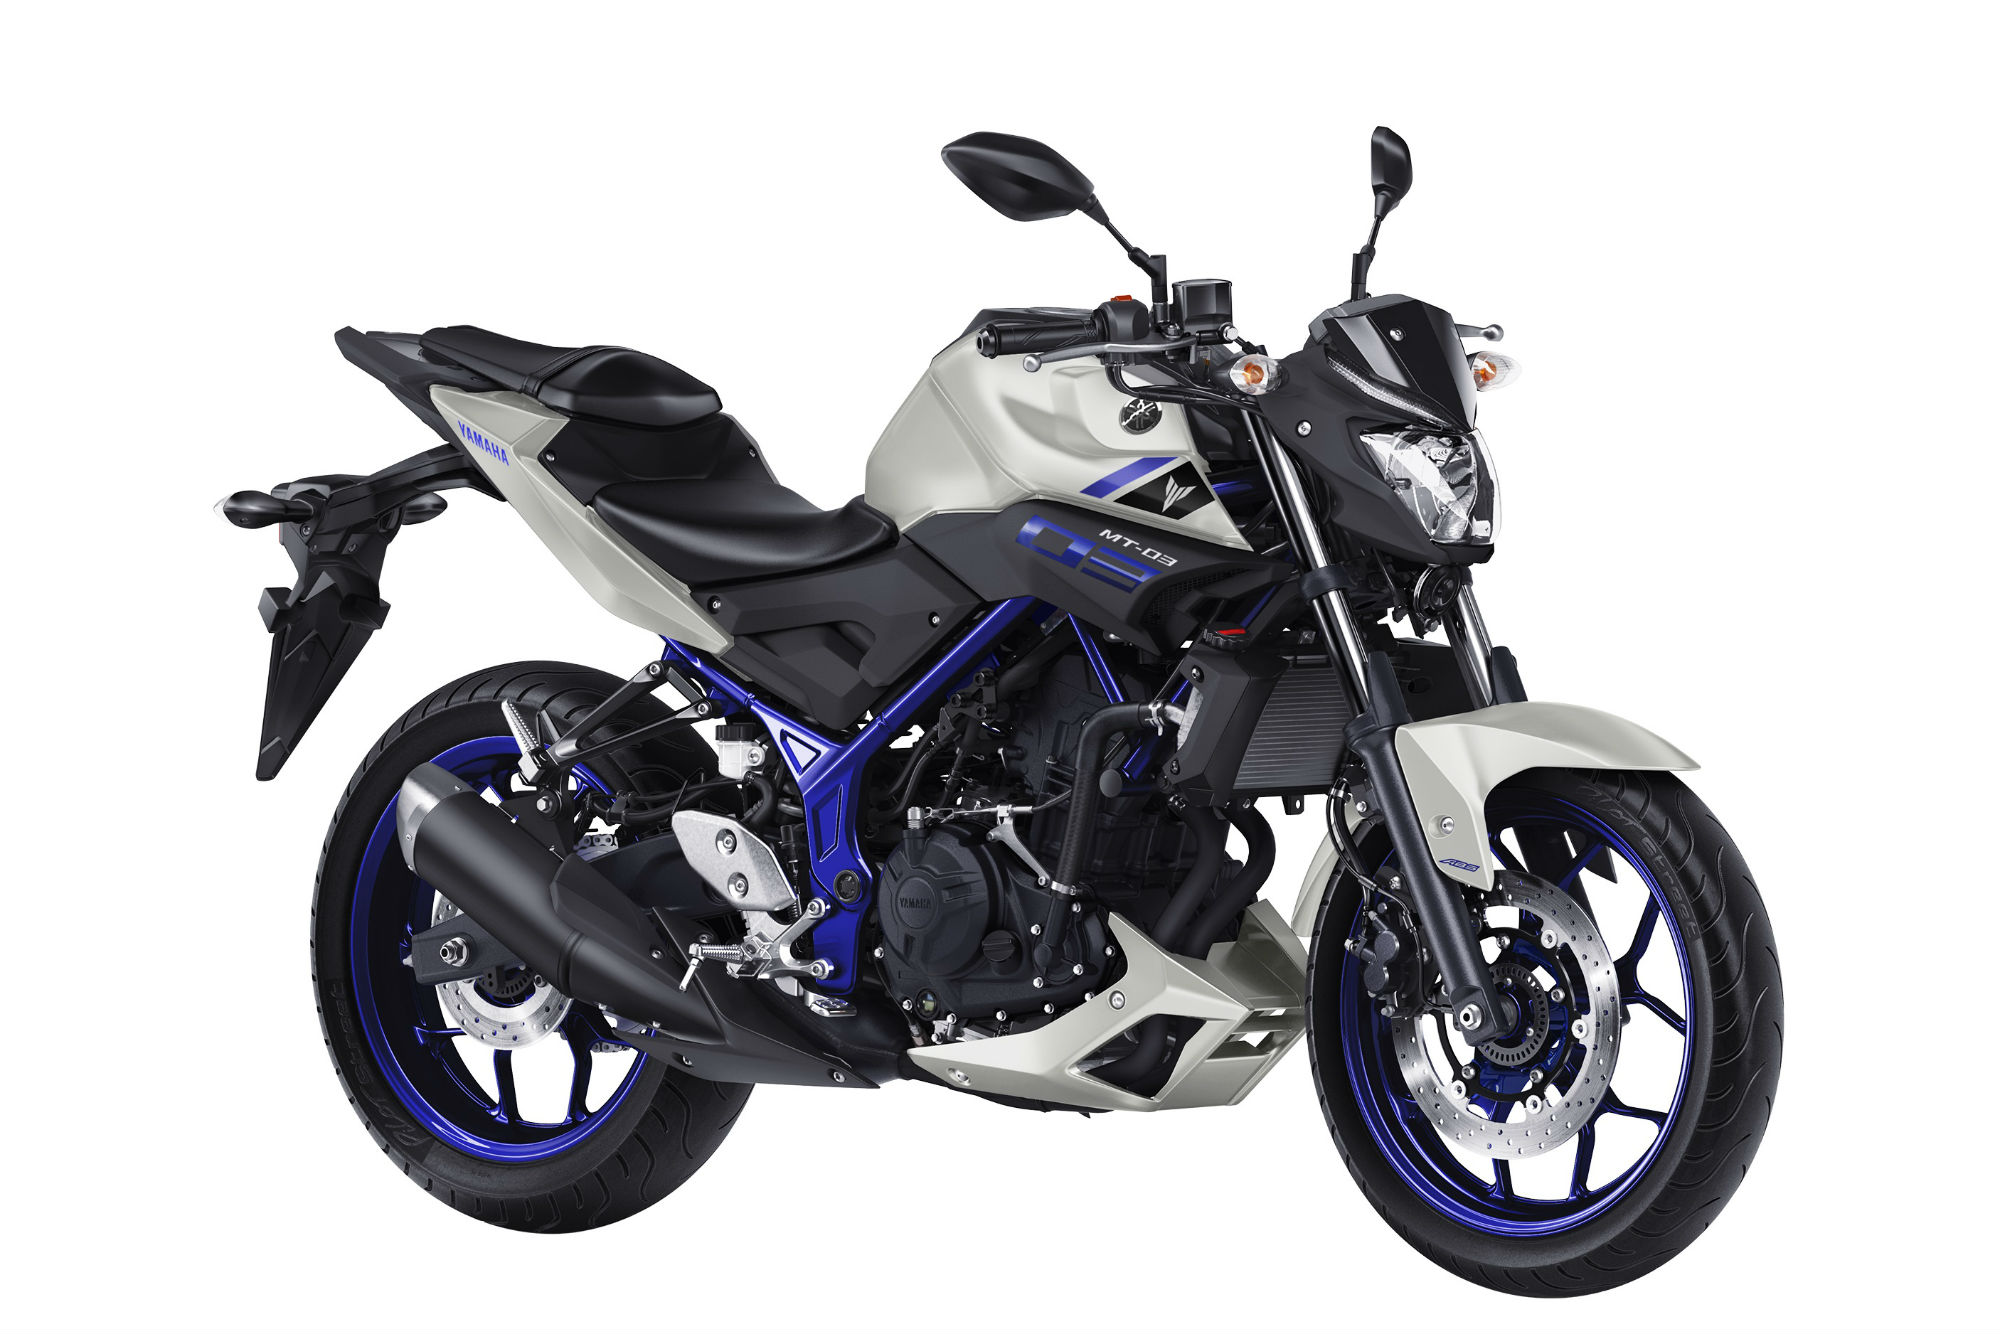 Yamaha MT 03 Price in India, Launch Date, Specs, Mileage